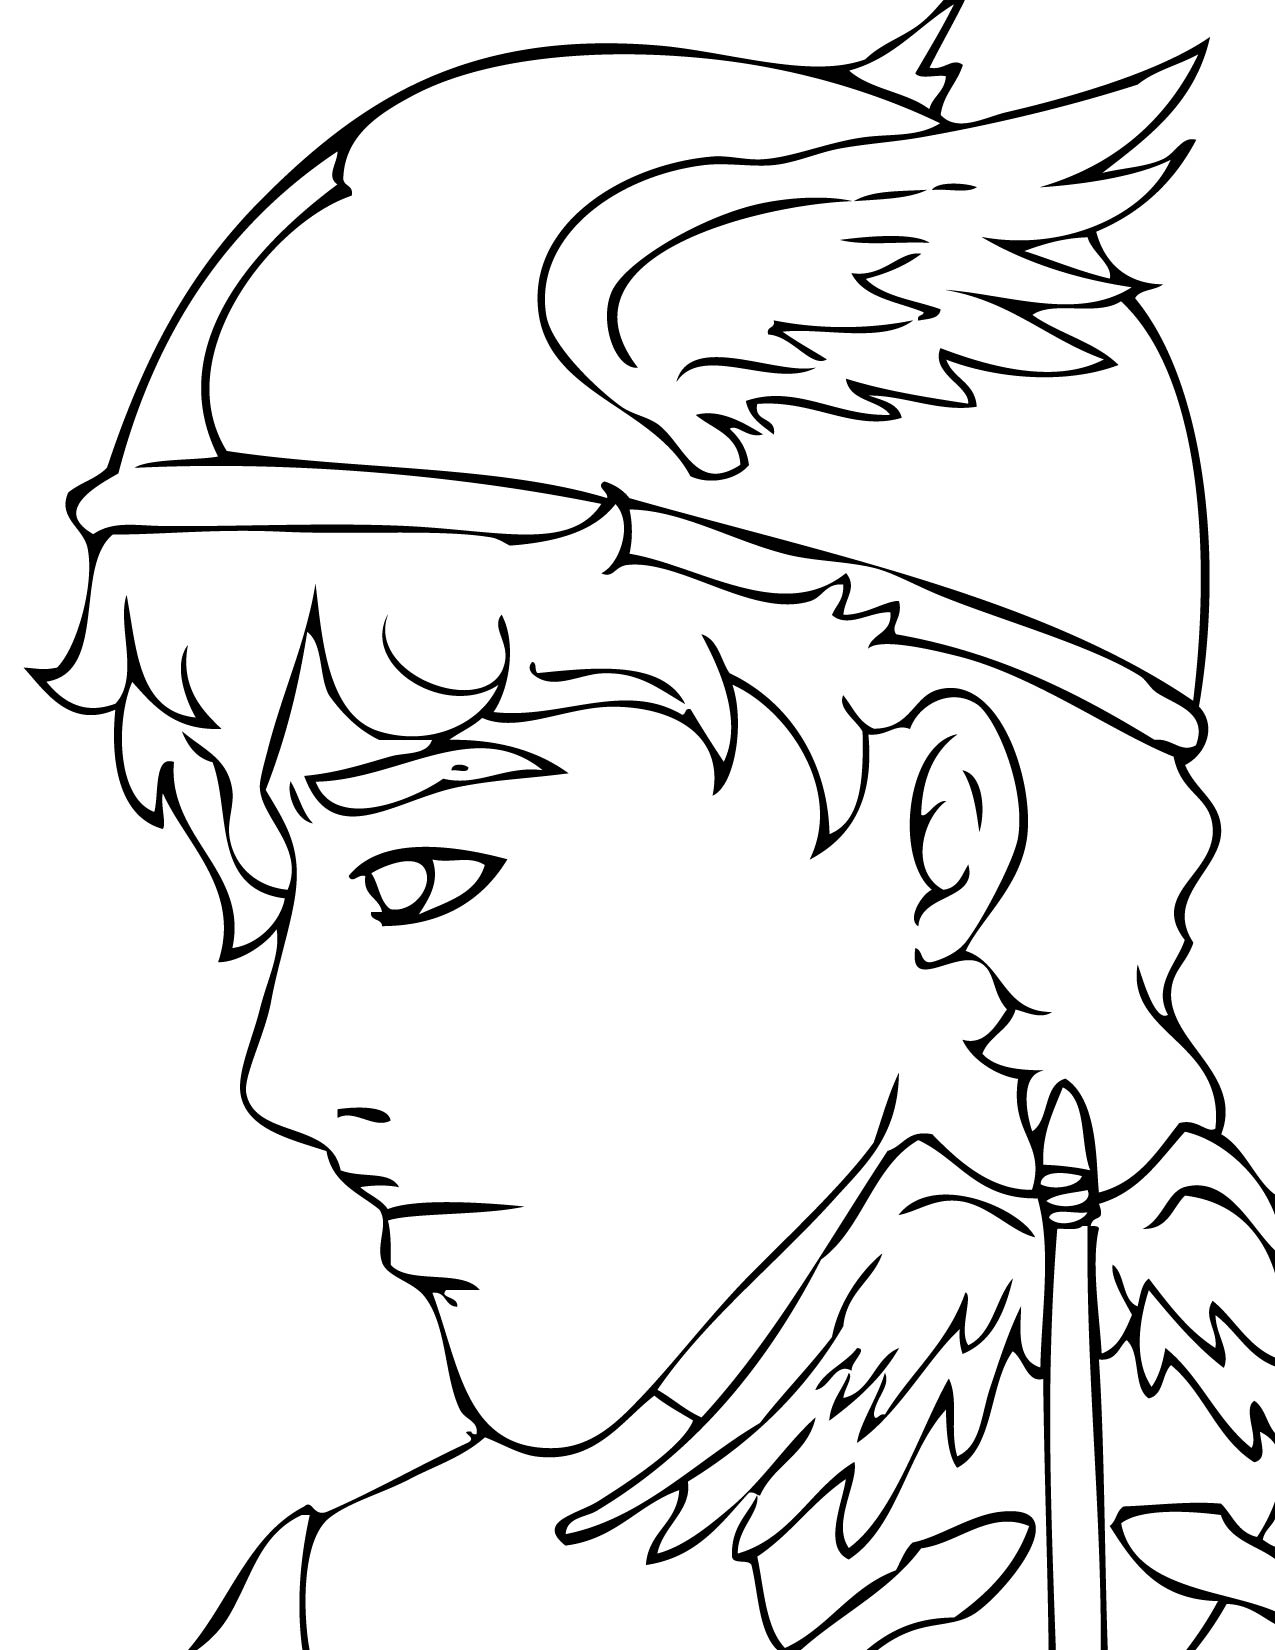 1275x1650 Hermes Coloring Page